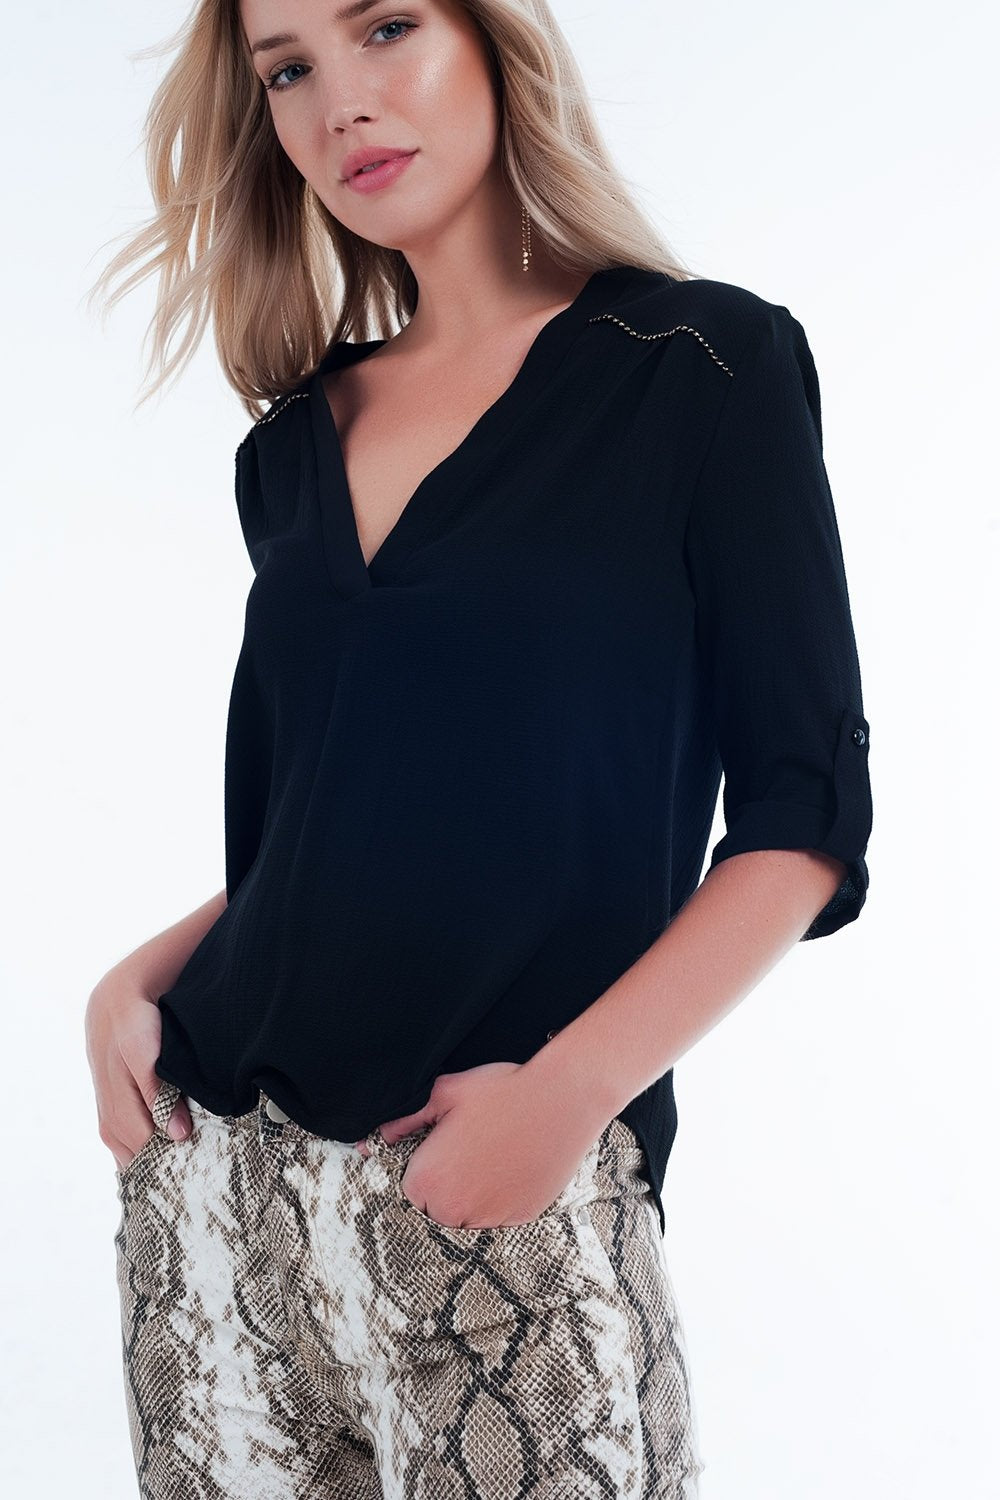 Blouse With Embellished Detail in Black - ShopAndGo.Online